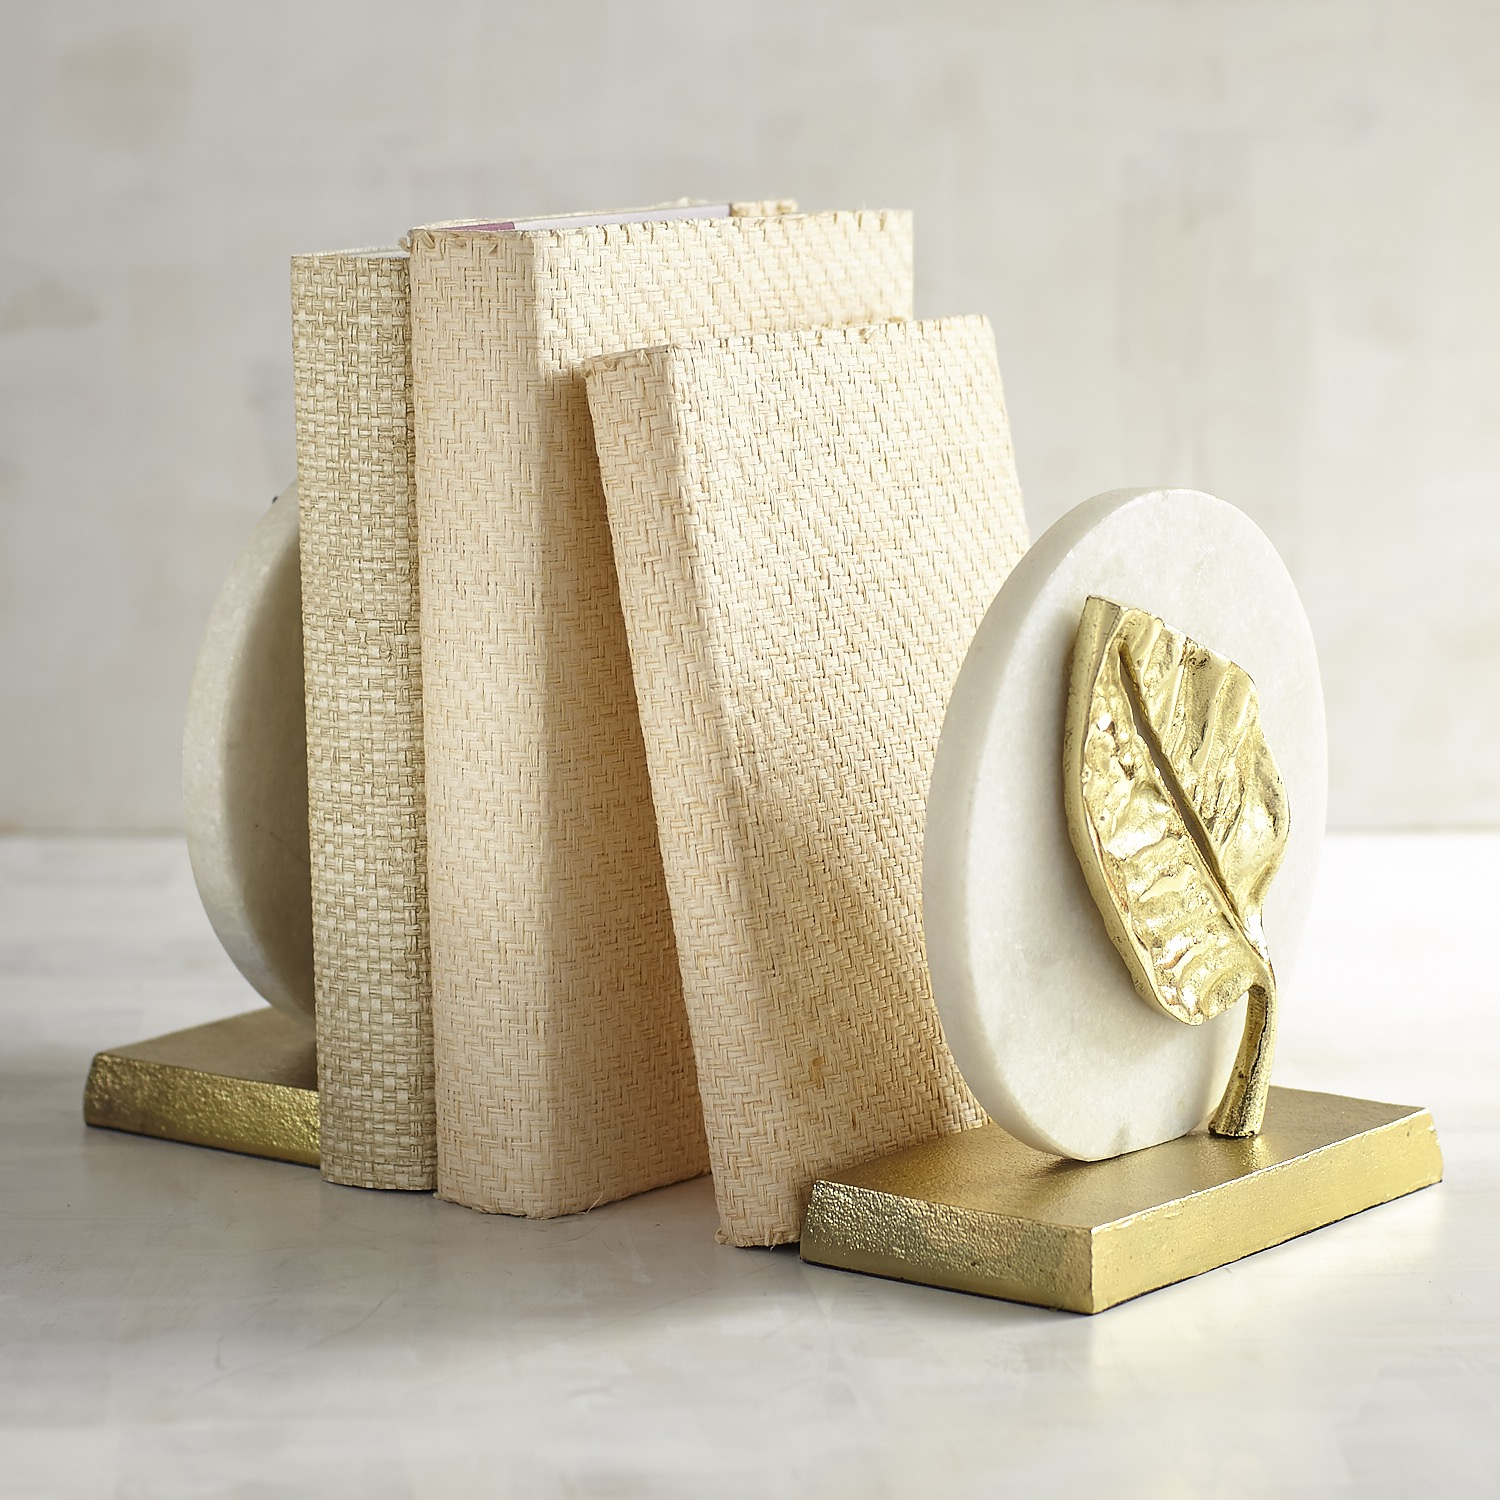 Golden Leaves on Marble Bookend Set